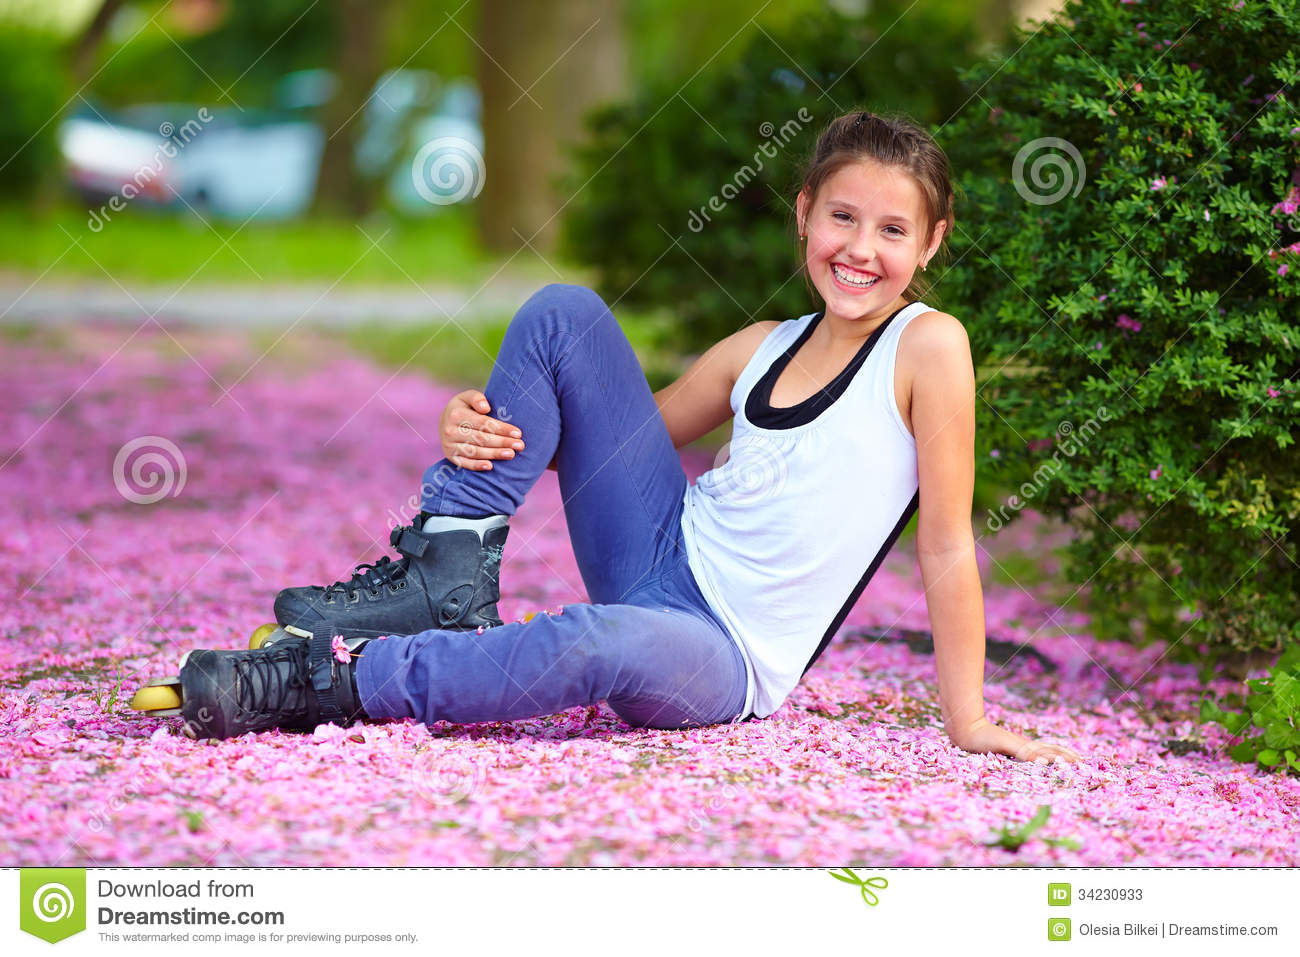 Cute Girl Roller-skater In Spring Park Stock Photos - Image: 34230933